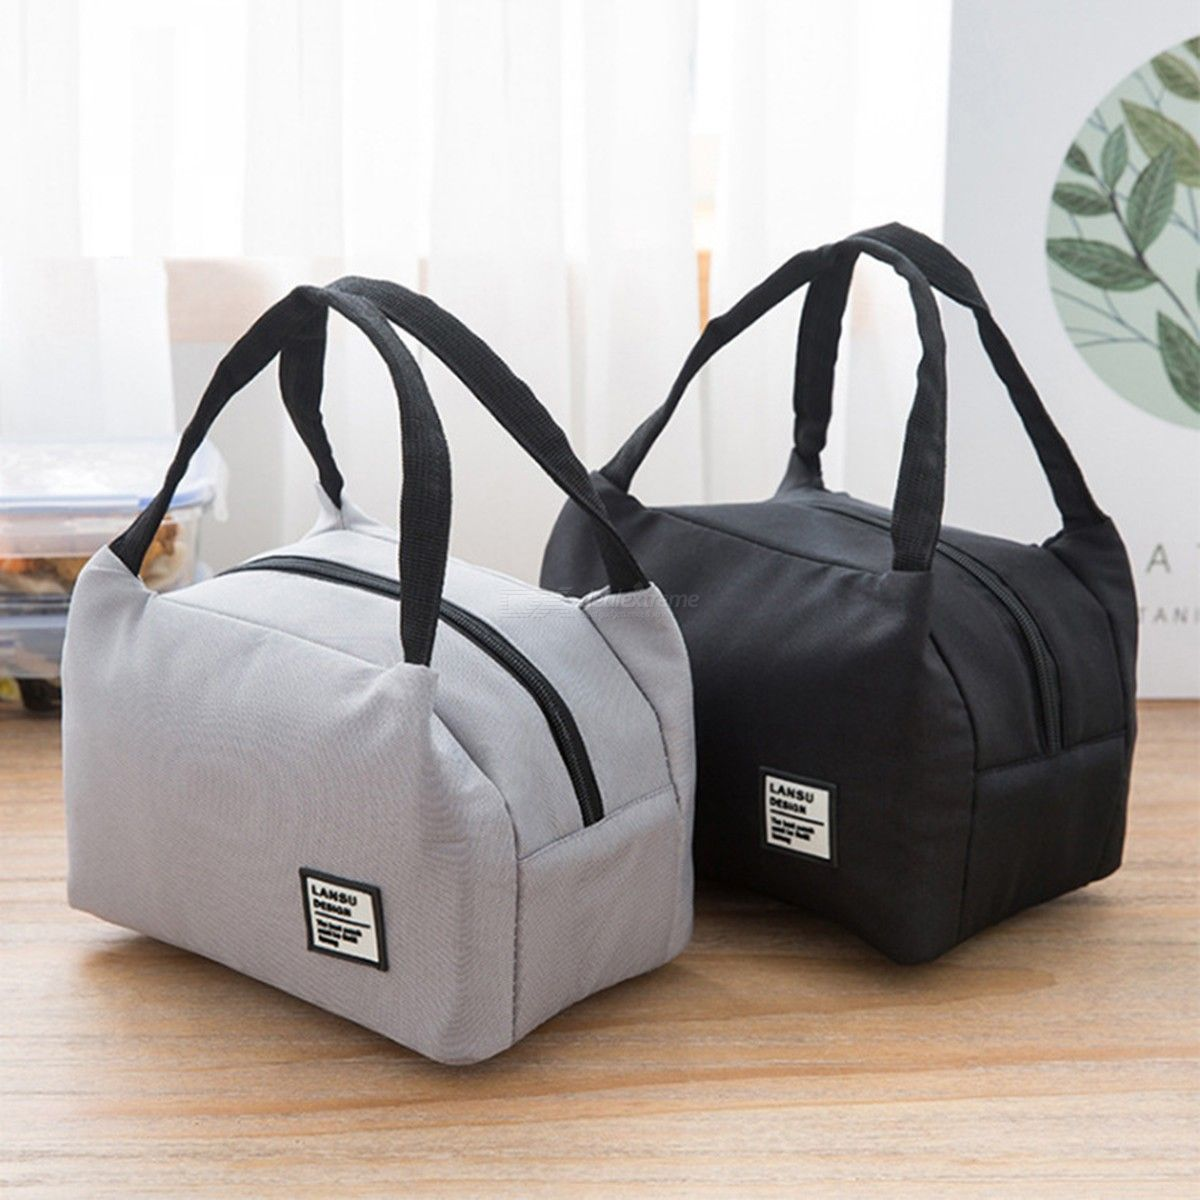 Portable Bento Bag Simple Large Capacity Insulated Lunch Totes